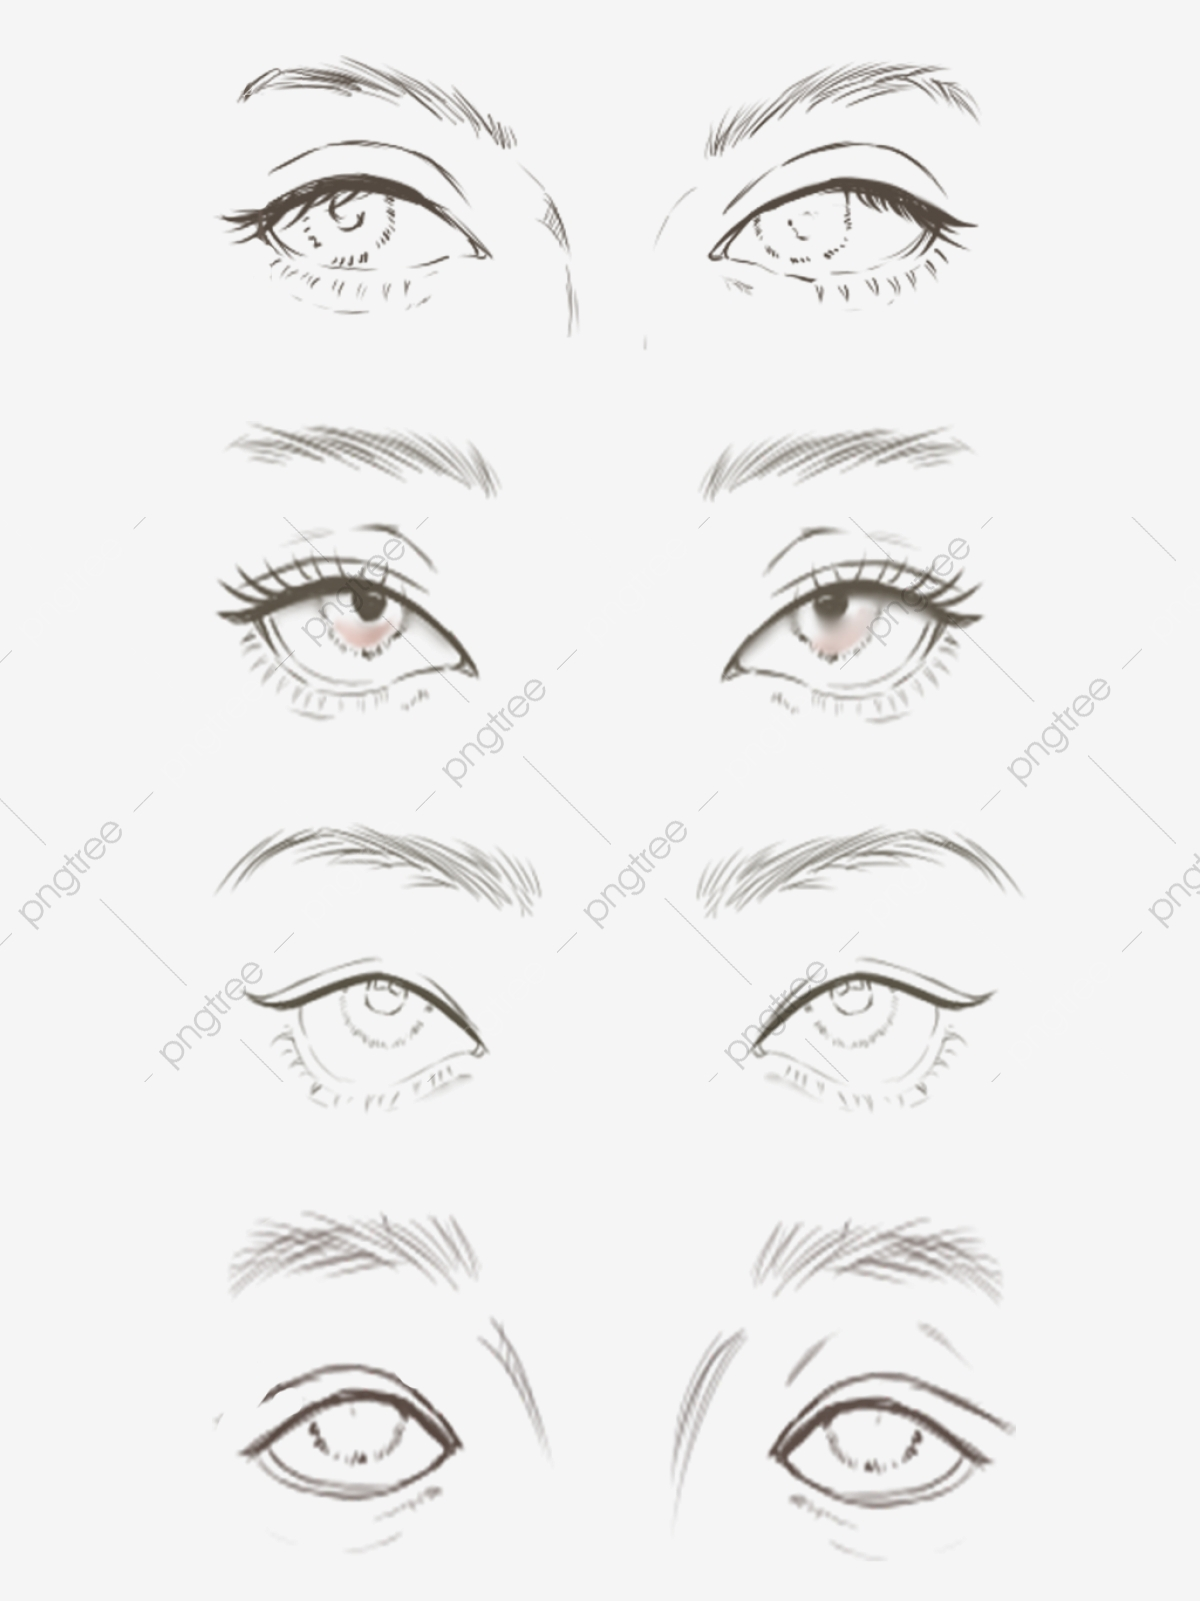 Hand painted eyes eyebrow makeup facial features fashion